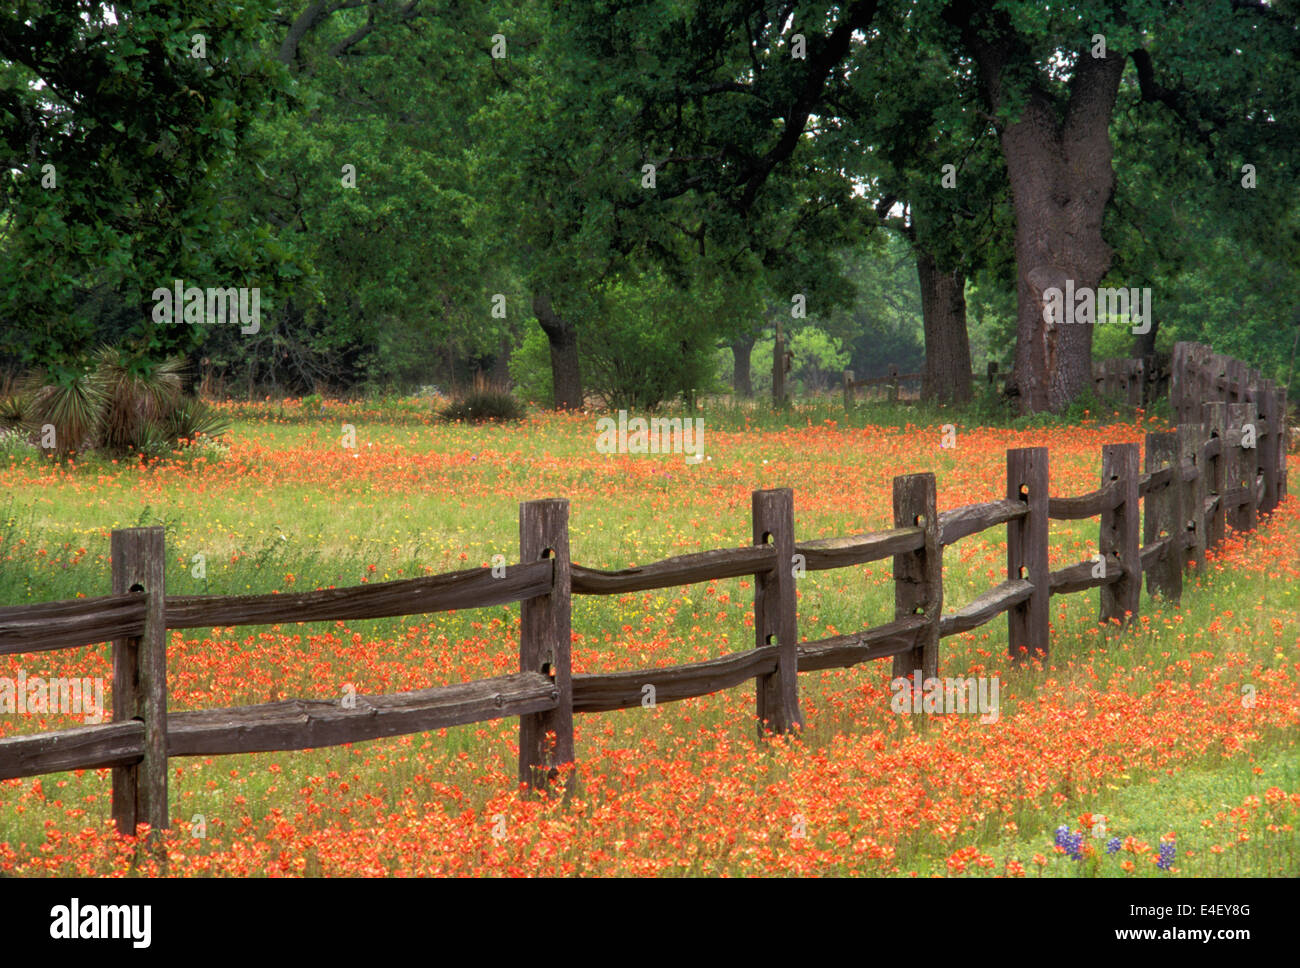 Indian paintbrush and rustic fence in the hill country of texas stock photo royalty free image - Rustic wood fences a pastoral atmosphere ...